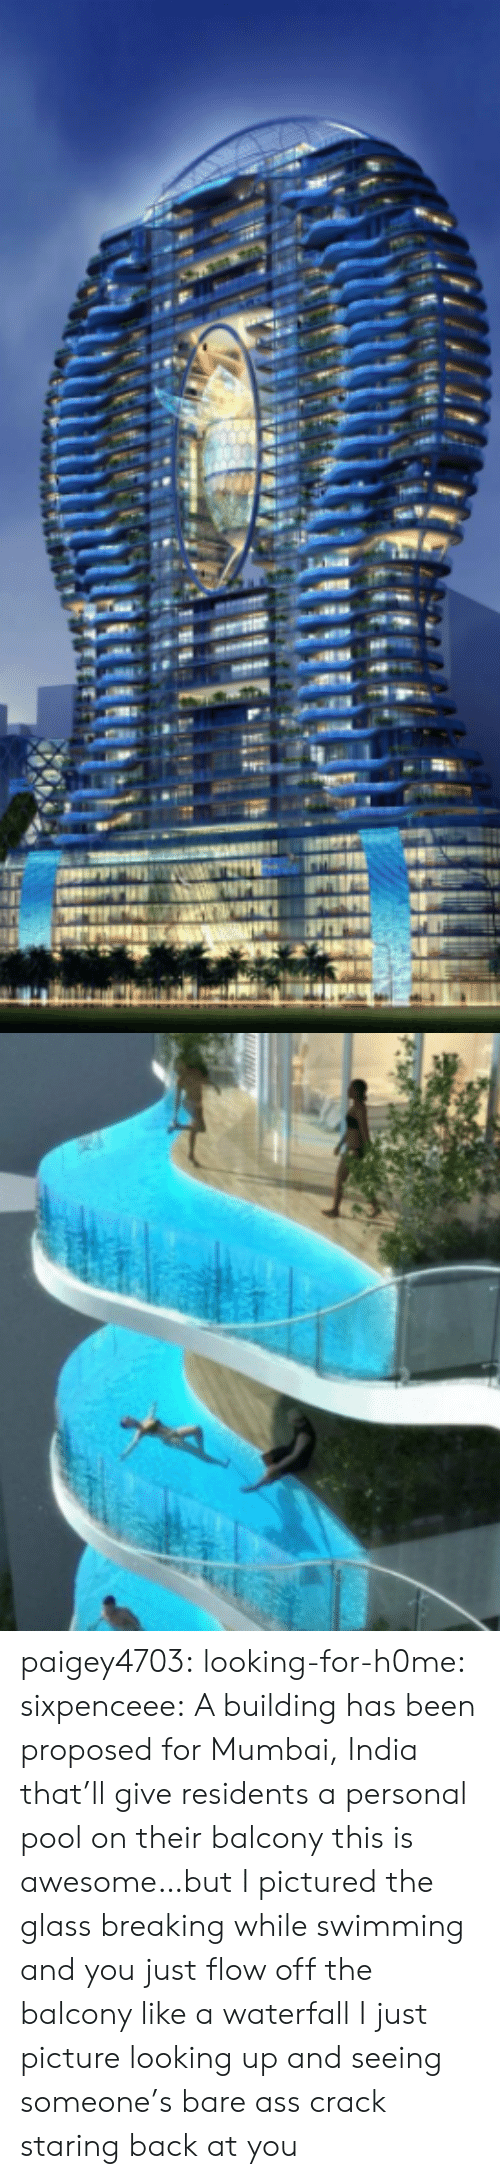 Ass, Tumblr, and Blog: paigey4703:  looking-for-h0me:  sixpenceee: A building has been proposed for Mumbai, India that'll give residents a personal pool on their balcony this is awesome…but I pictured the glass breaking while swimming and you just flow off the balcony like a waterfall    I just picture looking up and seeing someone's bare ass crack staring back at you